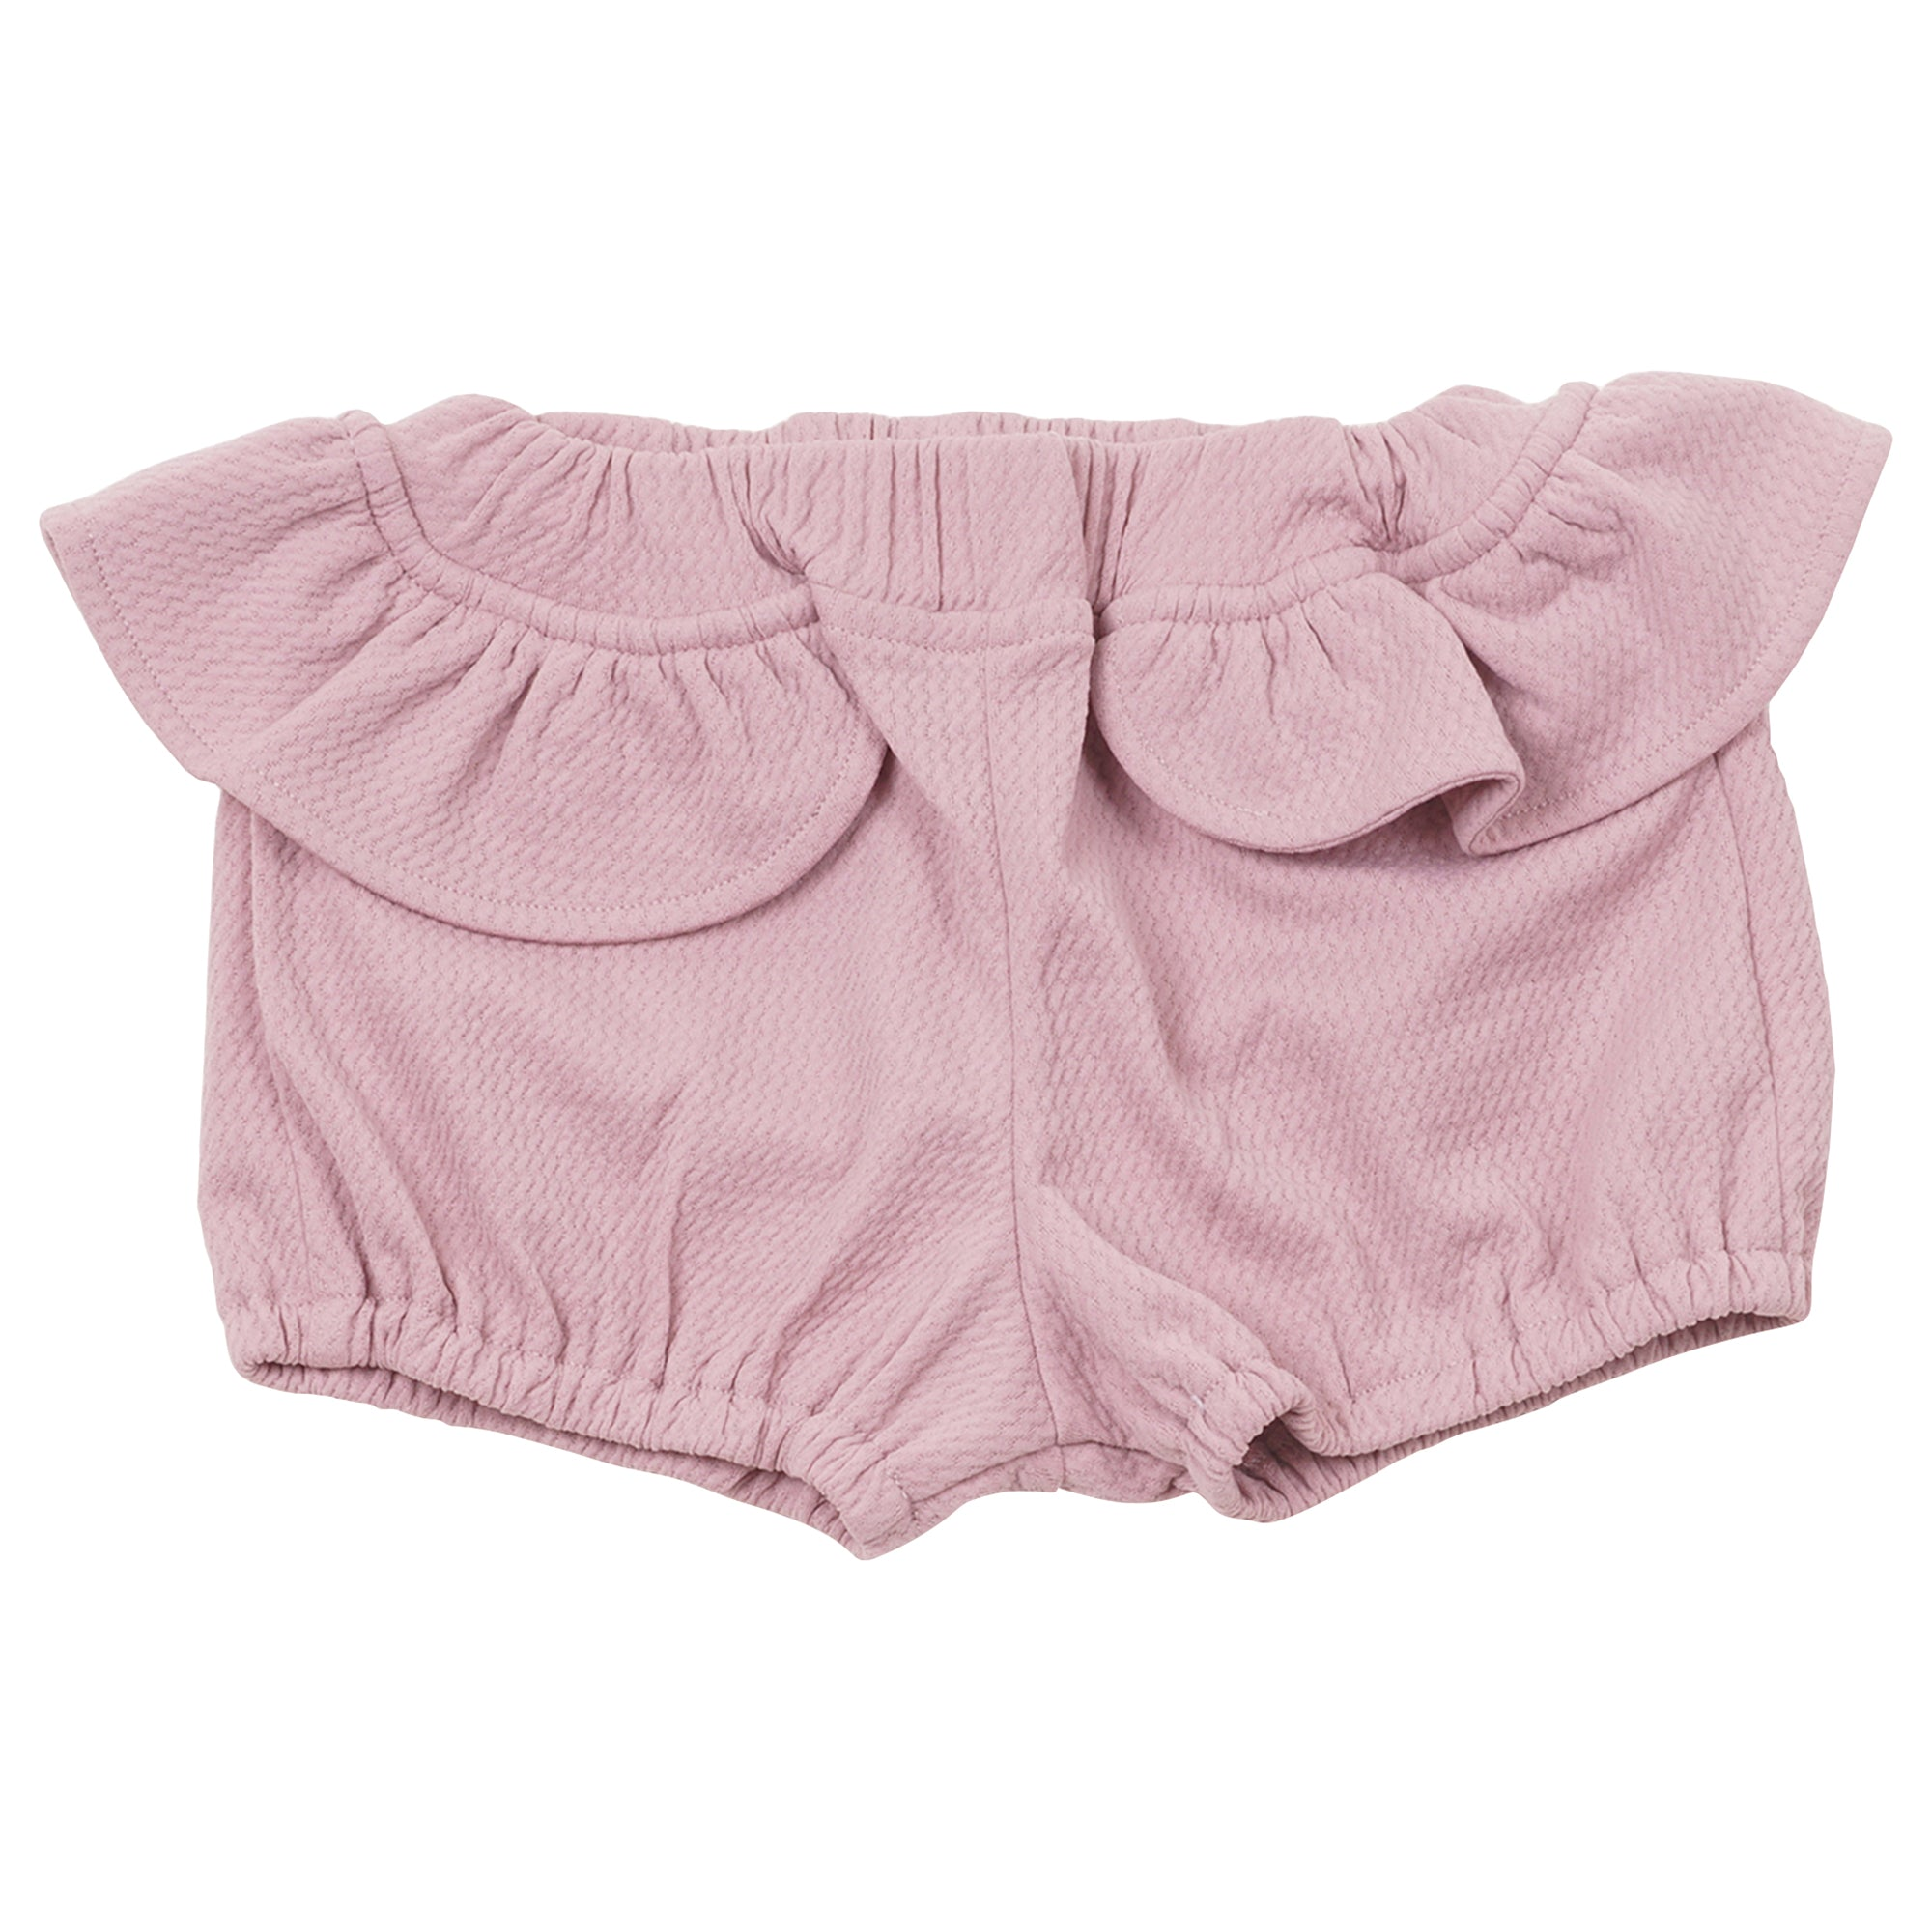 KRUTTER - Spinlon Romance Shorts - Rose